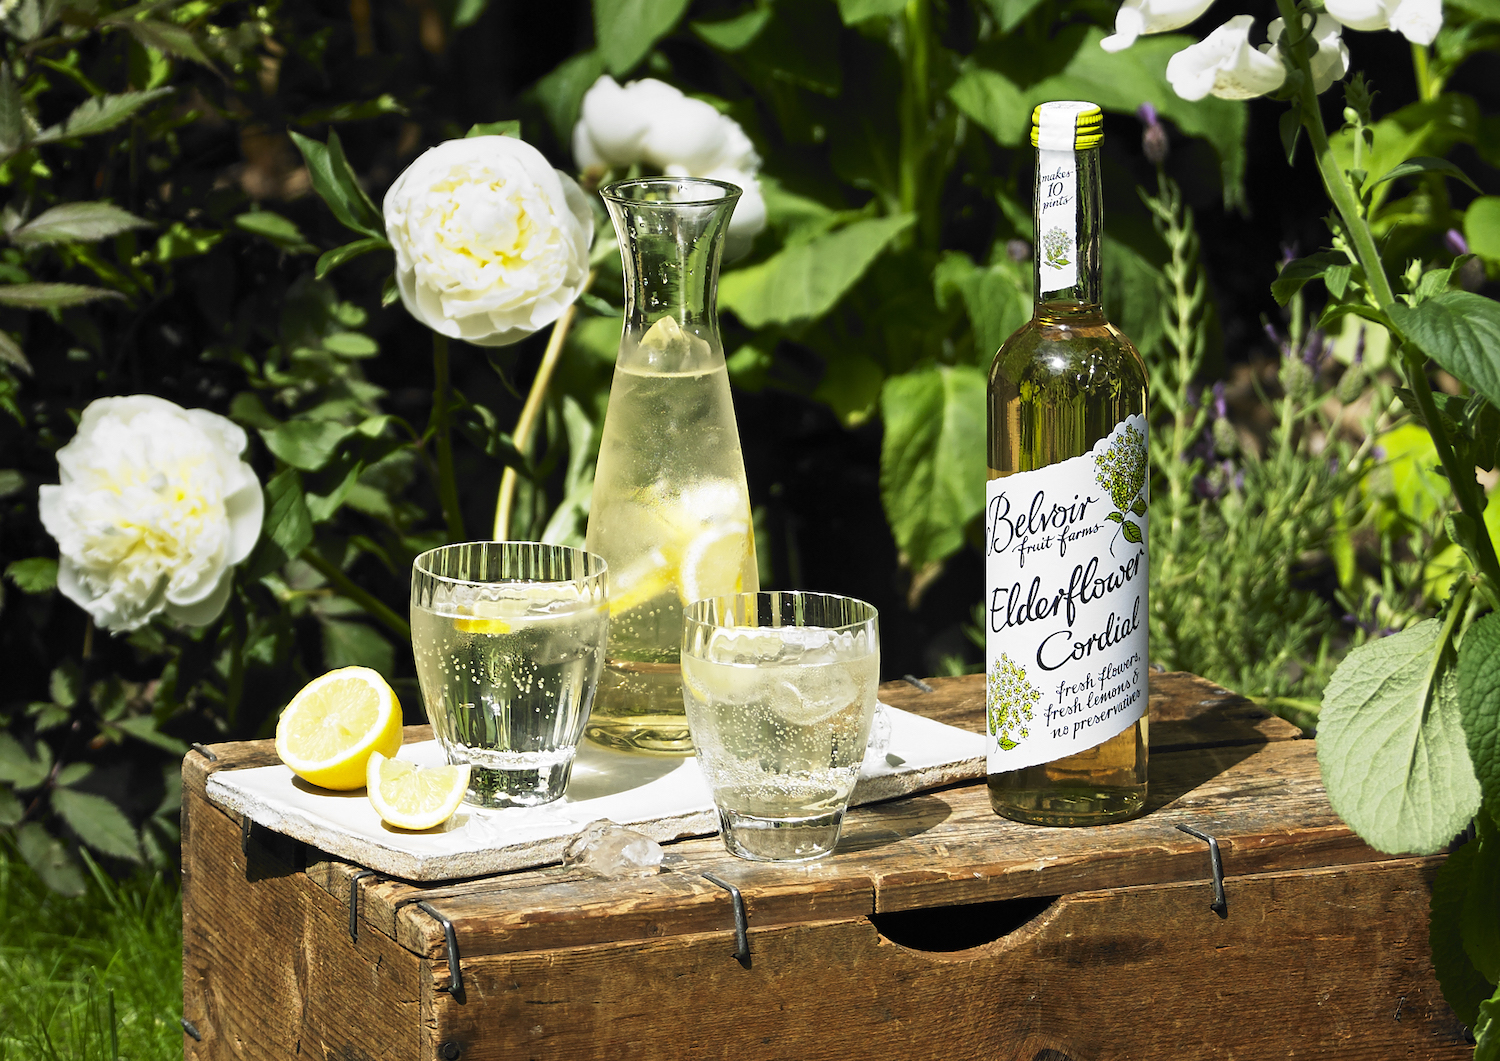 Local community spirit helps Belvoir Fruit Farms meet elderflower harvest demand within two weeks